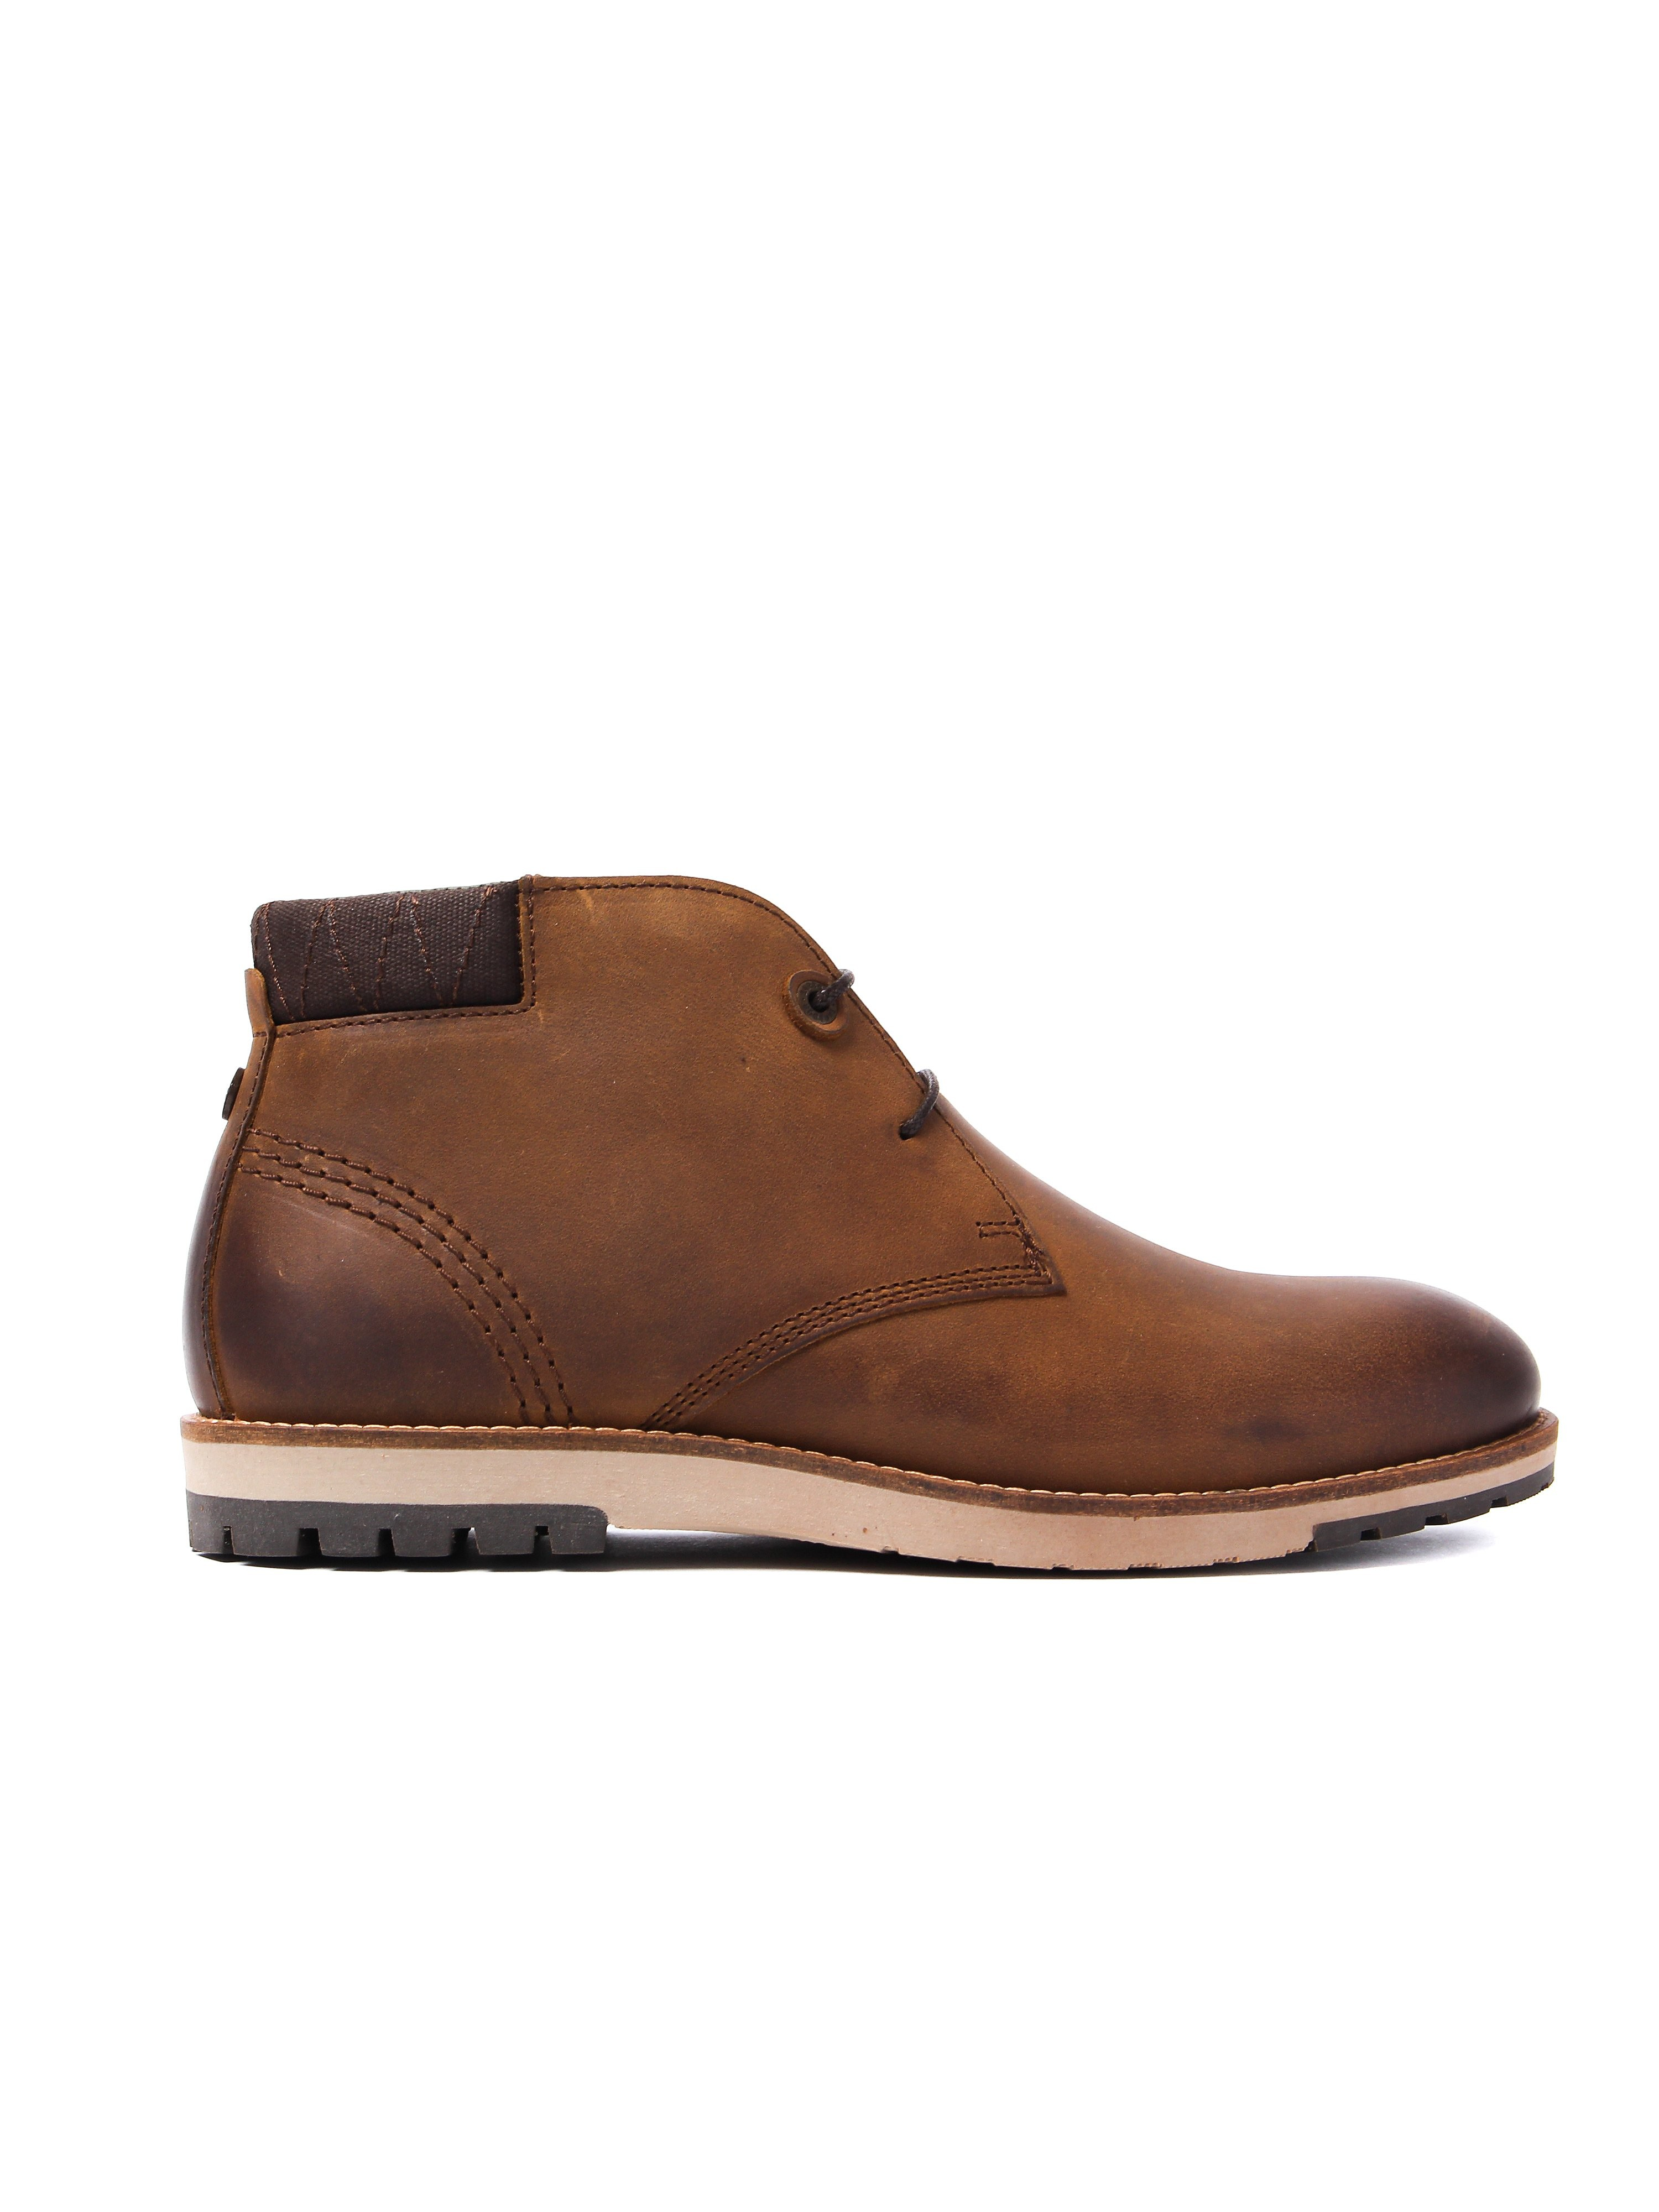 Barbour Men's Heppel Chukka Boots - Timber Tan